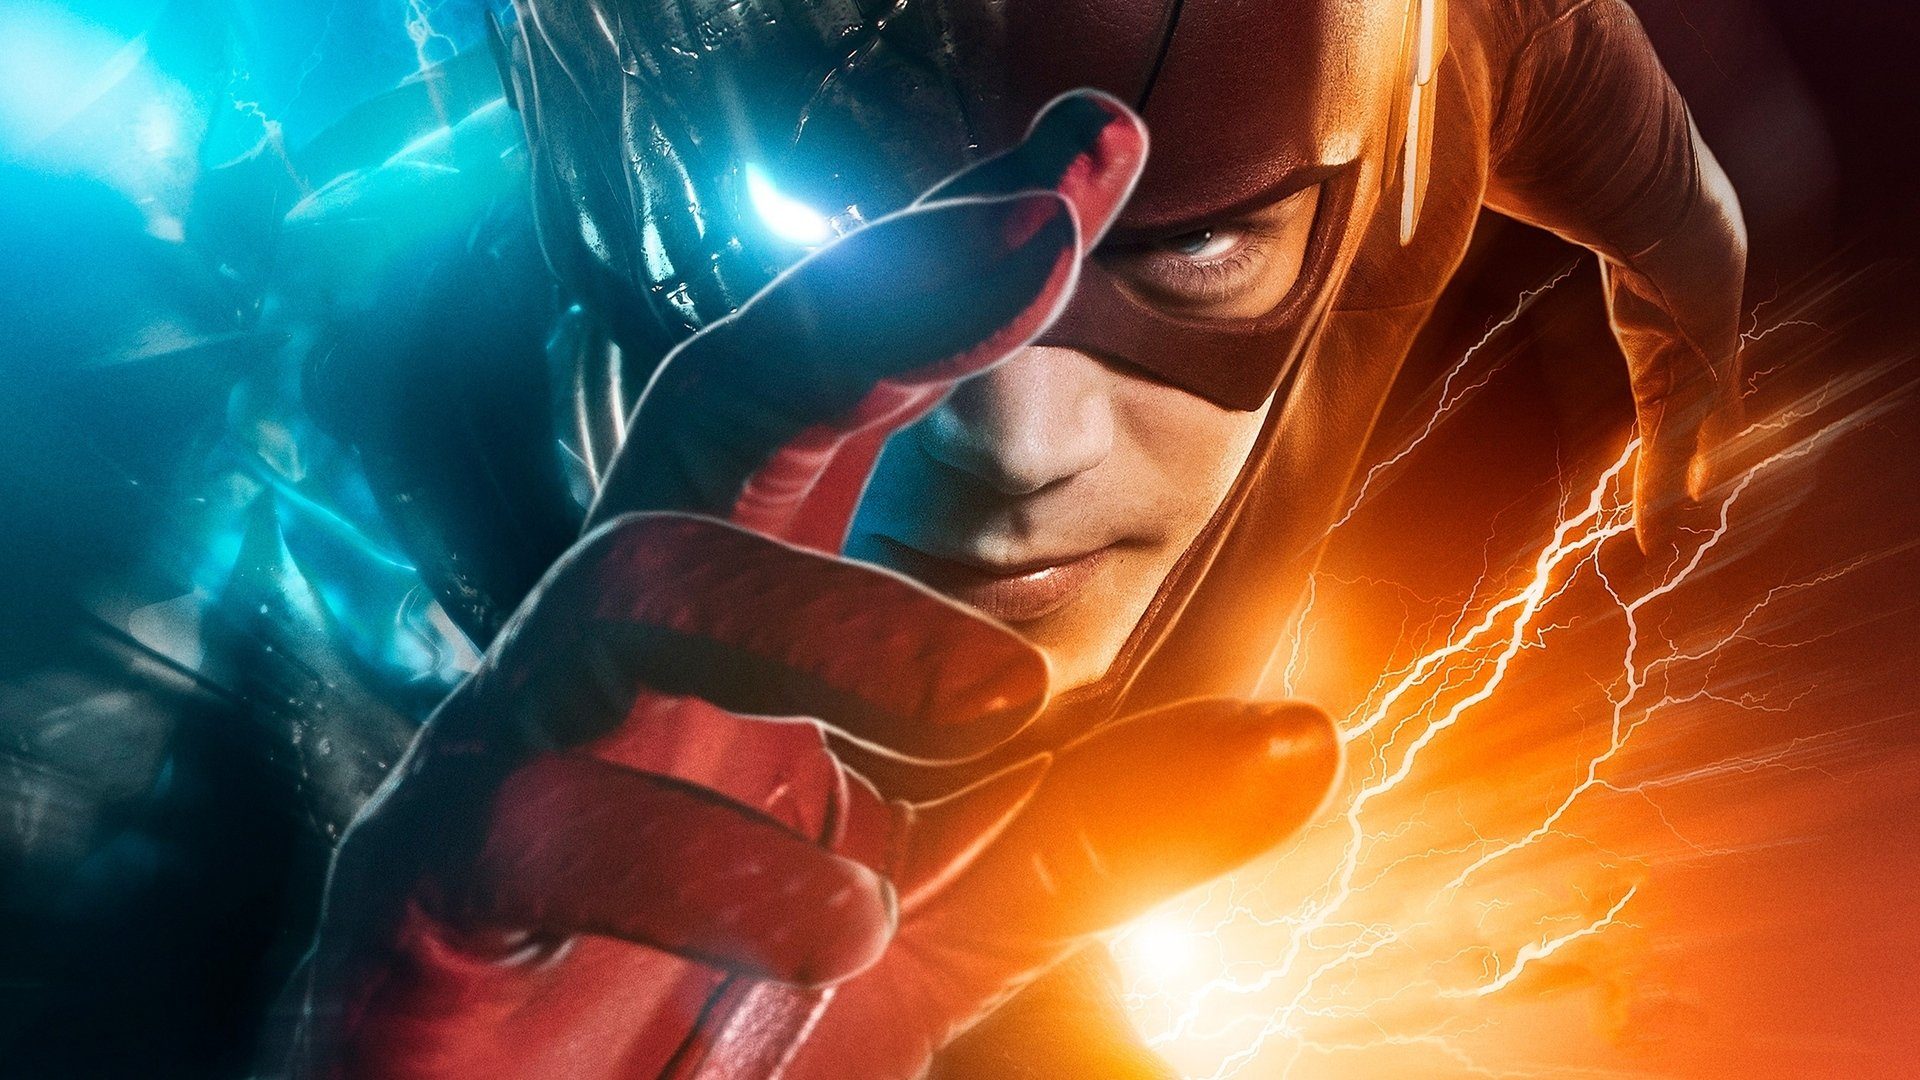 53 the flash (2014) hd wallpapers | background images - wallpaper abyss